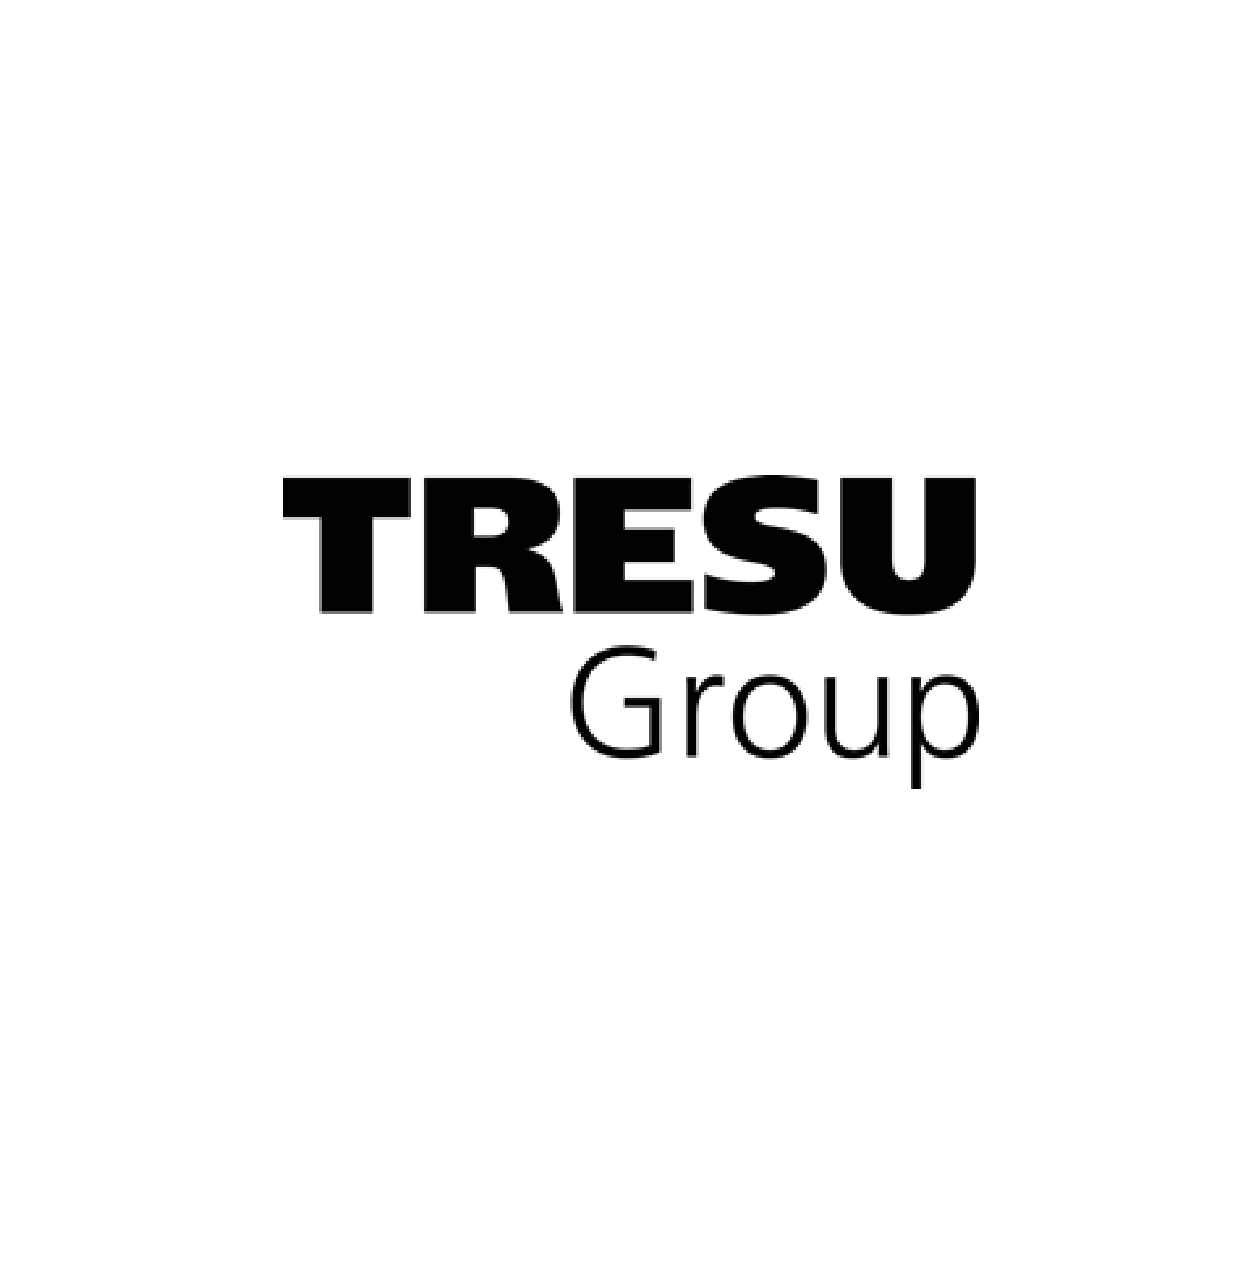 Trees Group logo